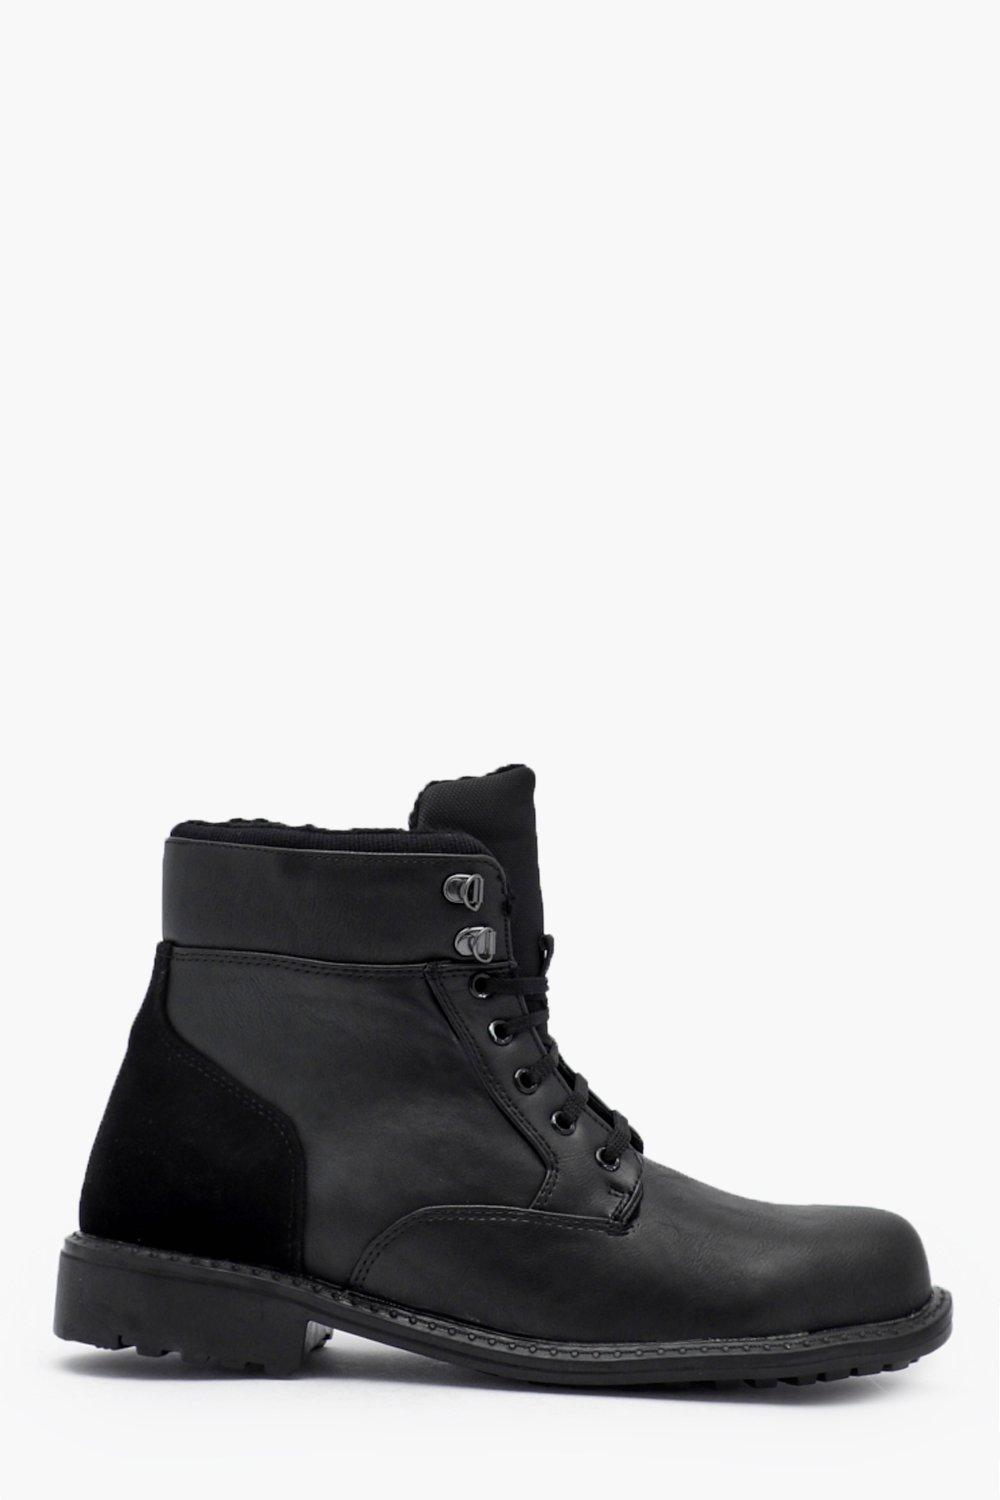 Купить Обувь, Faux Leather Lace Up Worker Boot, boohoo